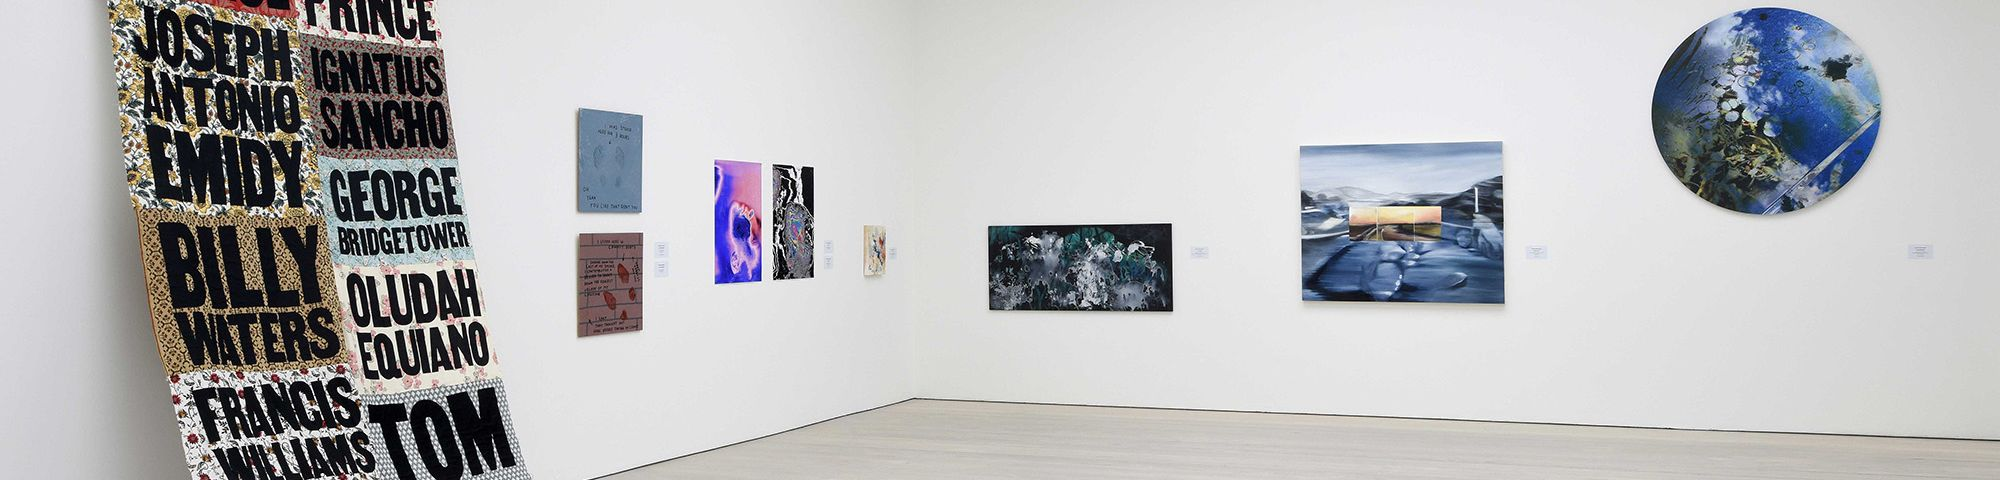 Installation view of several paintings and one large quilt hung on white wall